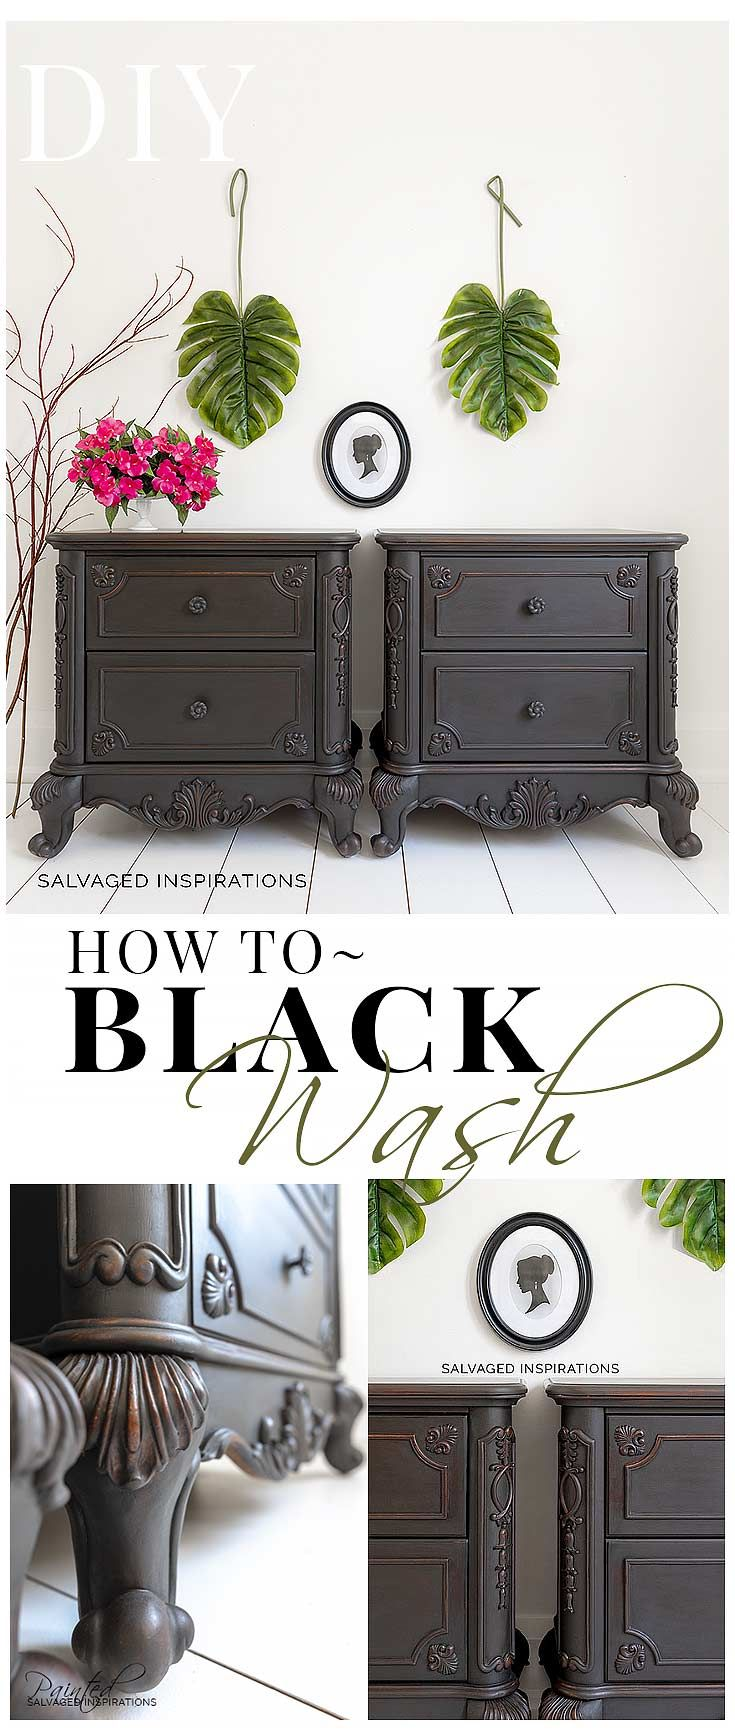 HOW TO CREATE AN EASY AND FAST BLACKWASH FINISH ON FURNITURE